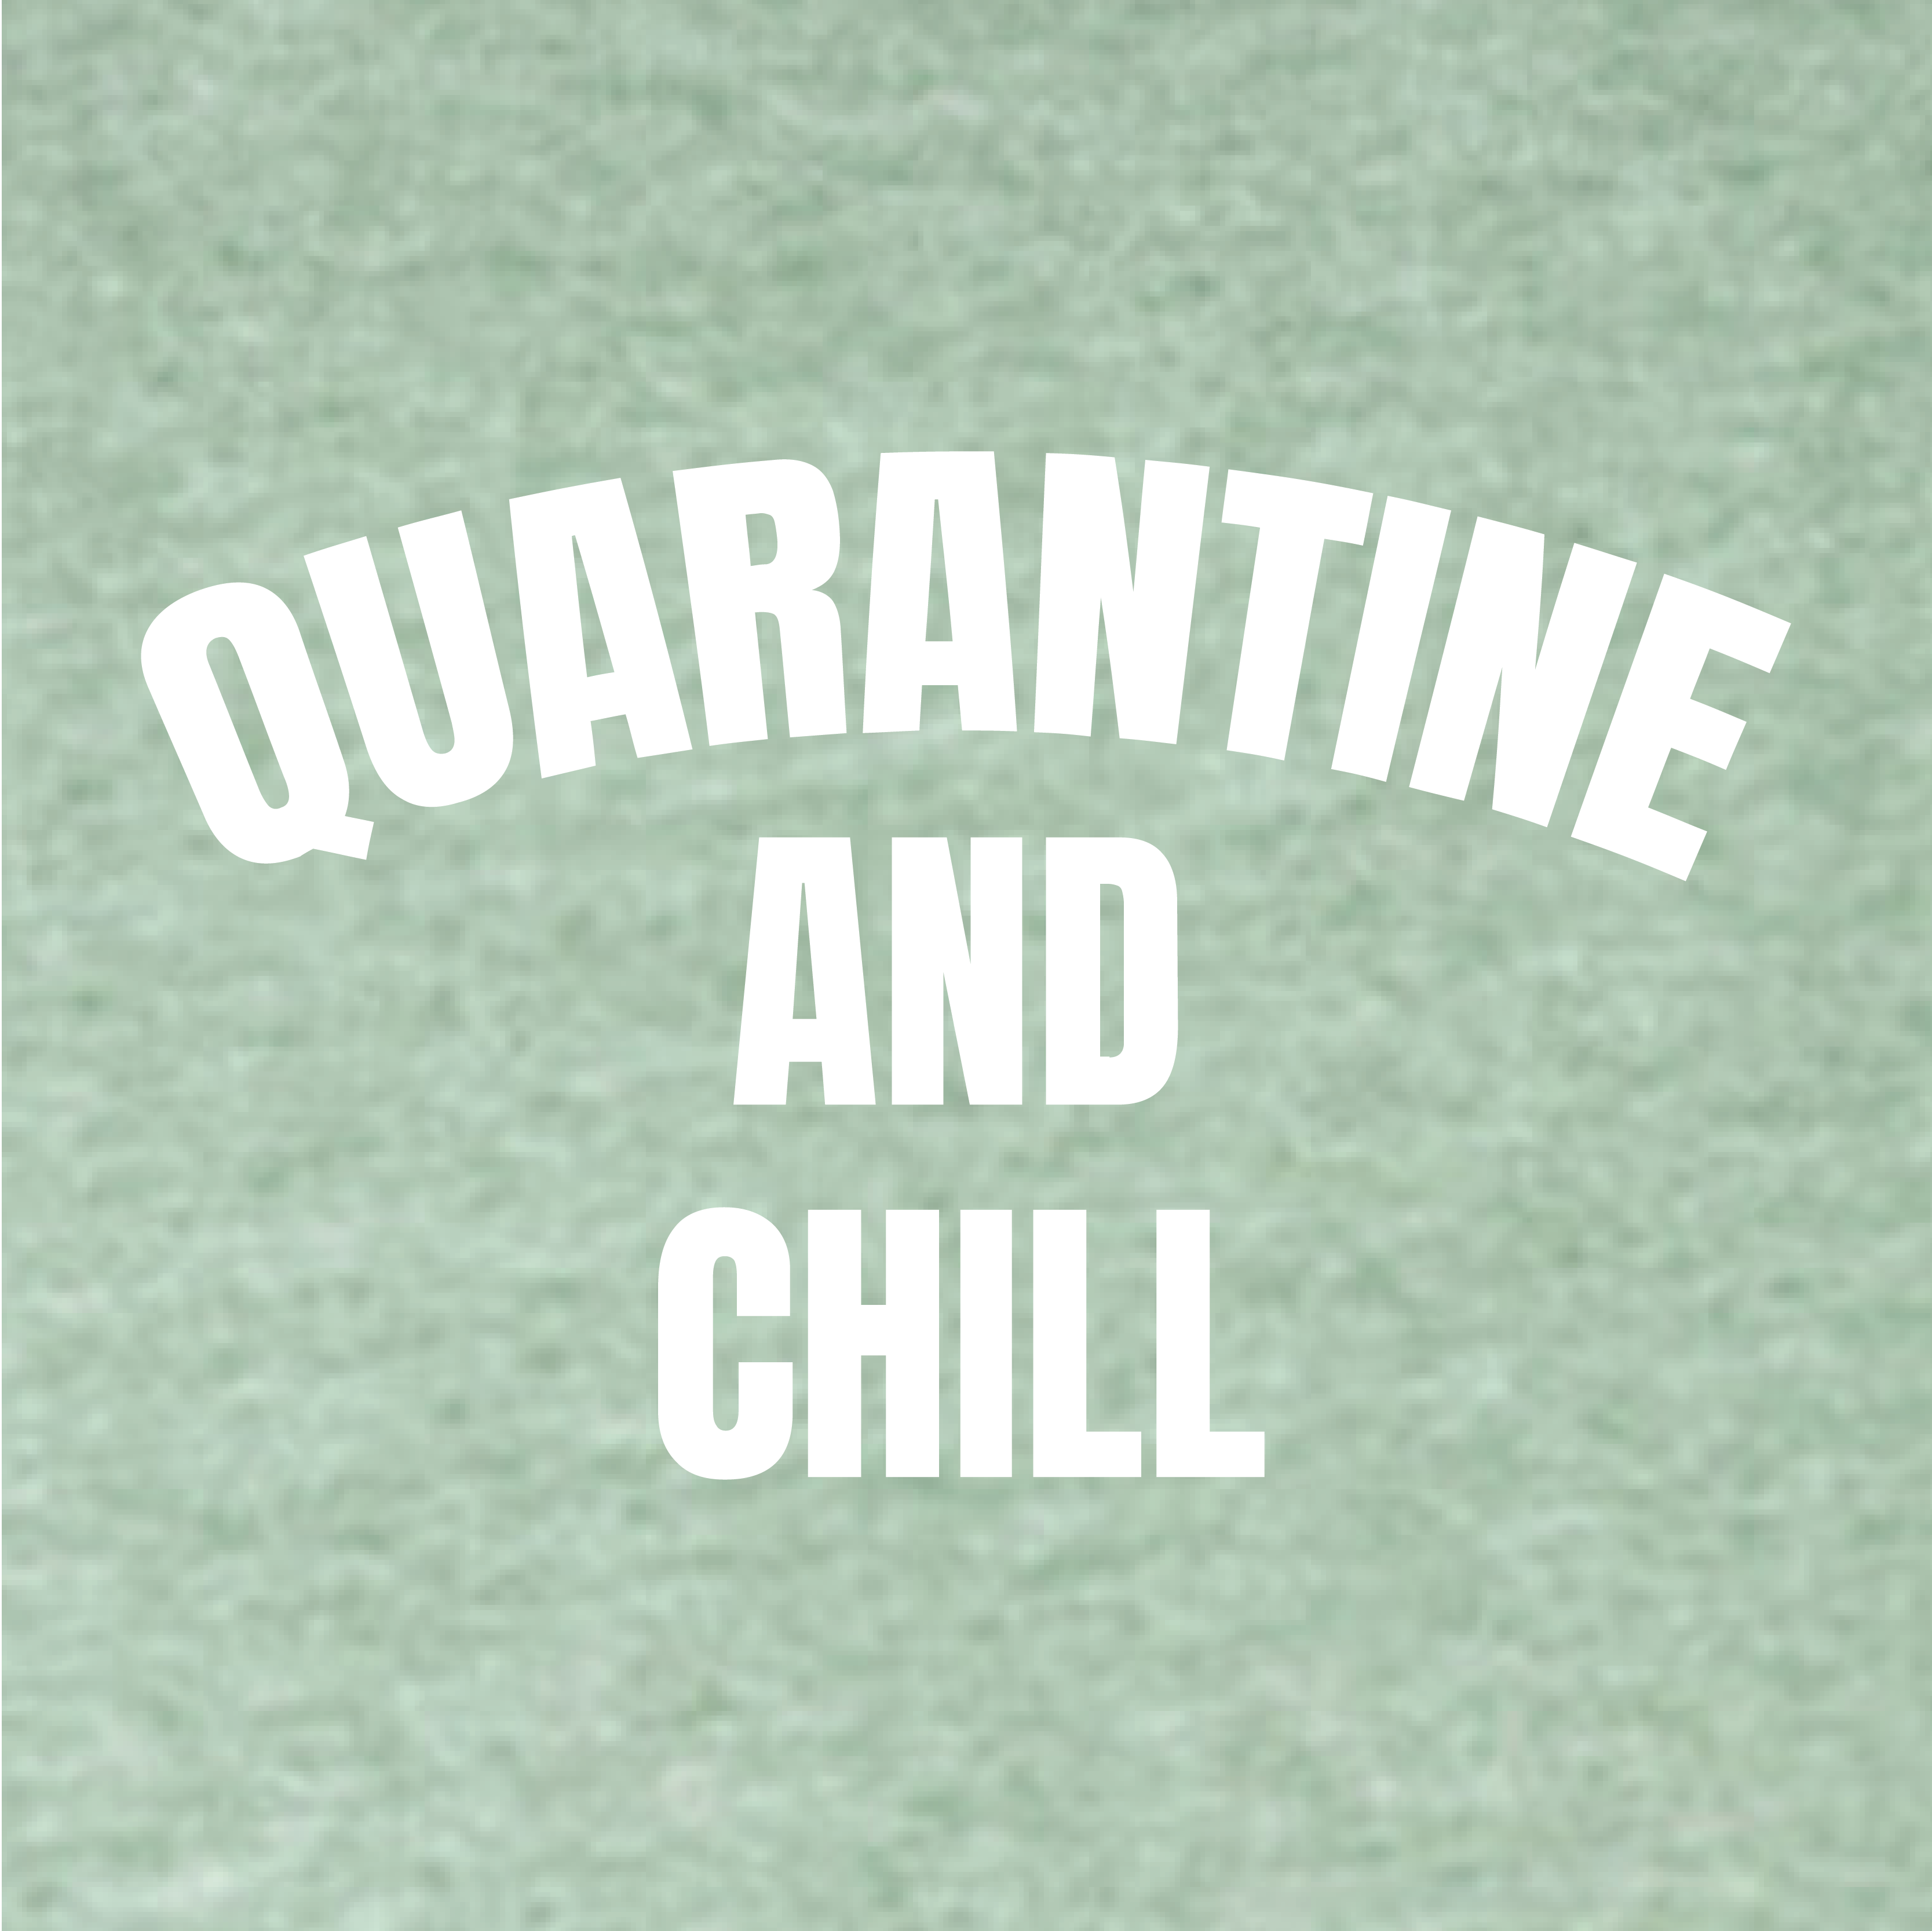 Quarantaine design 10 - Quarantine & Chill